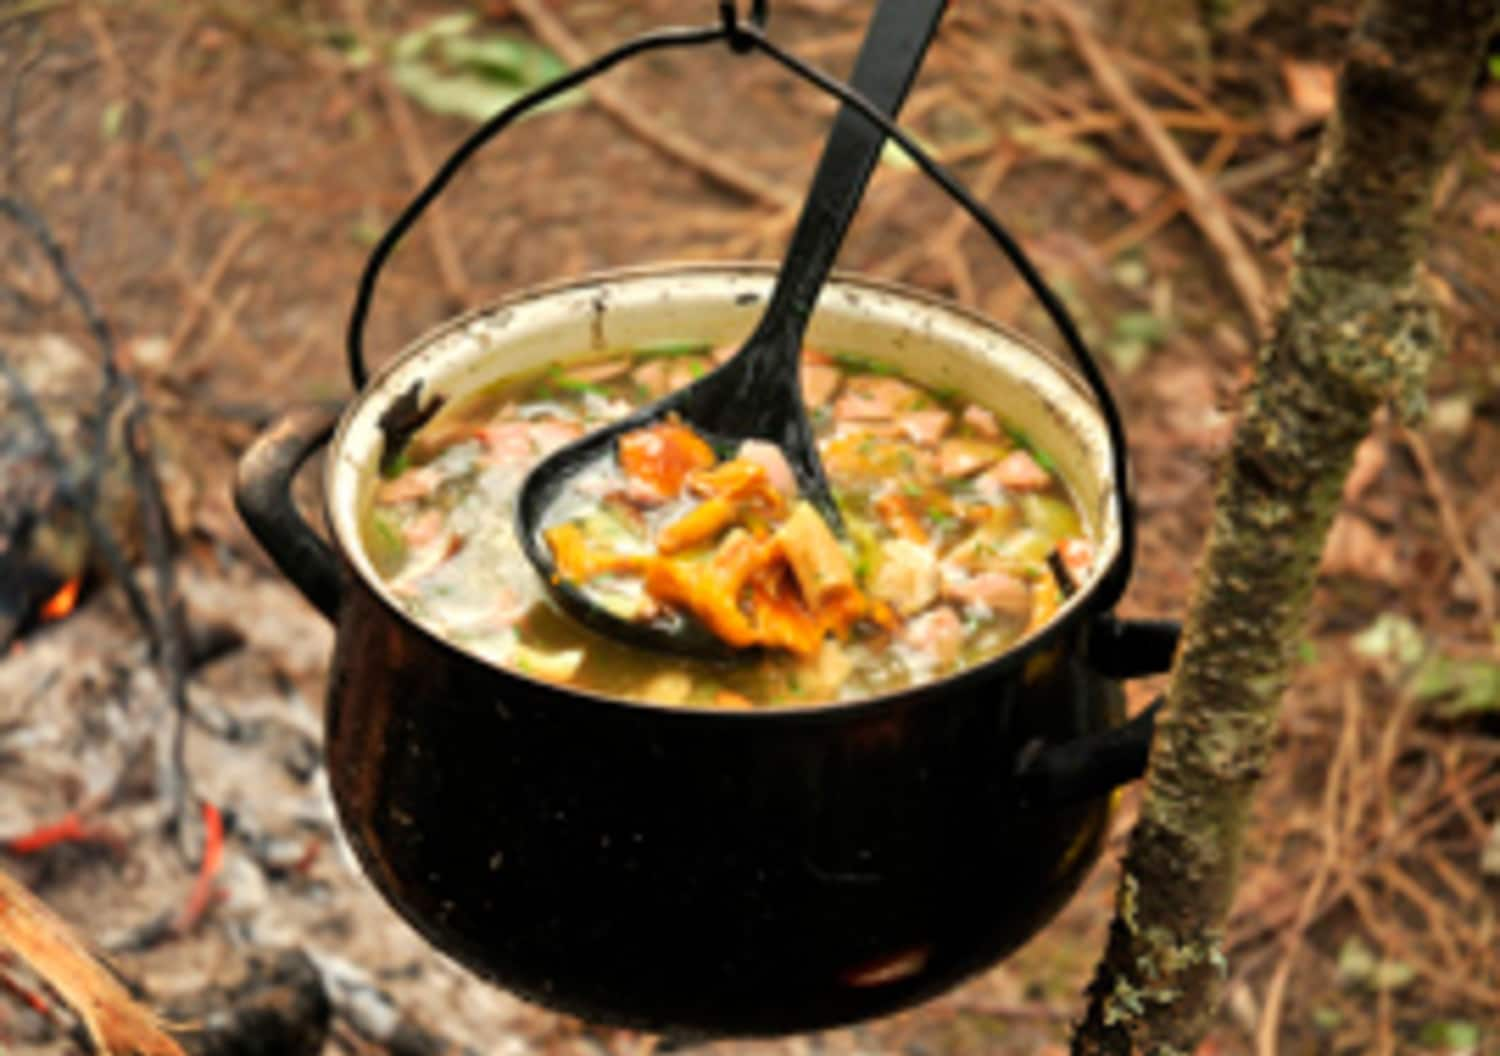 What Are Some Recipes for Camping or Backpacking That Don't Need Refrigeration?